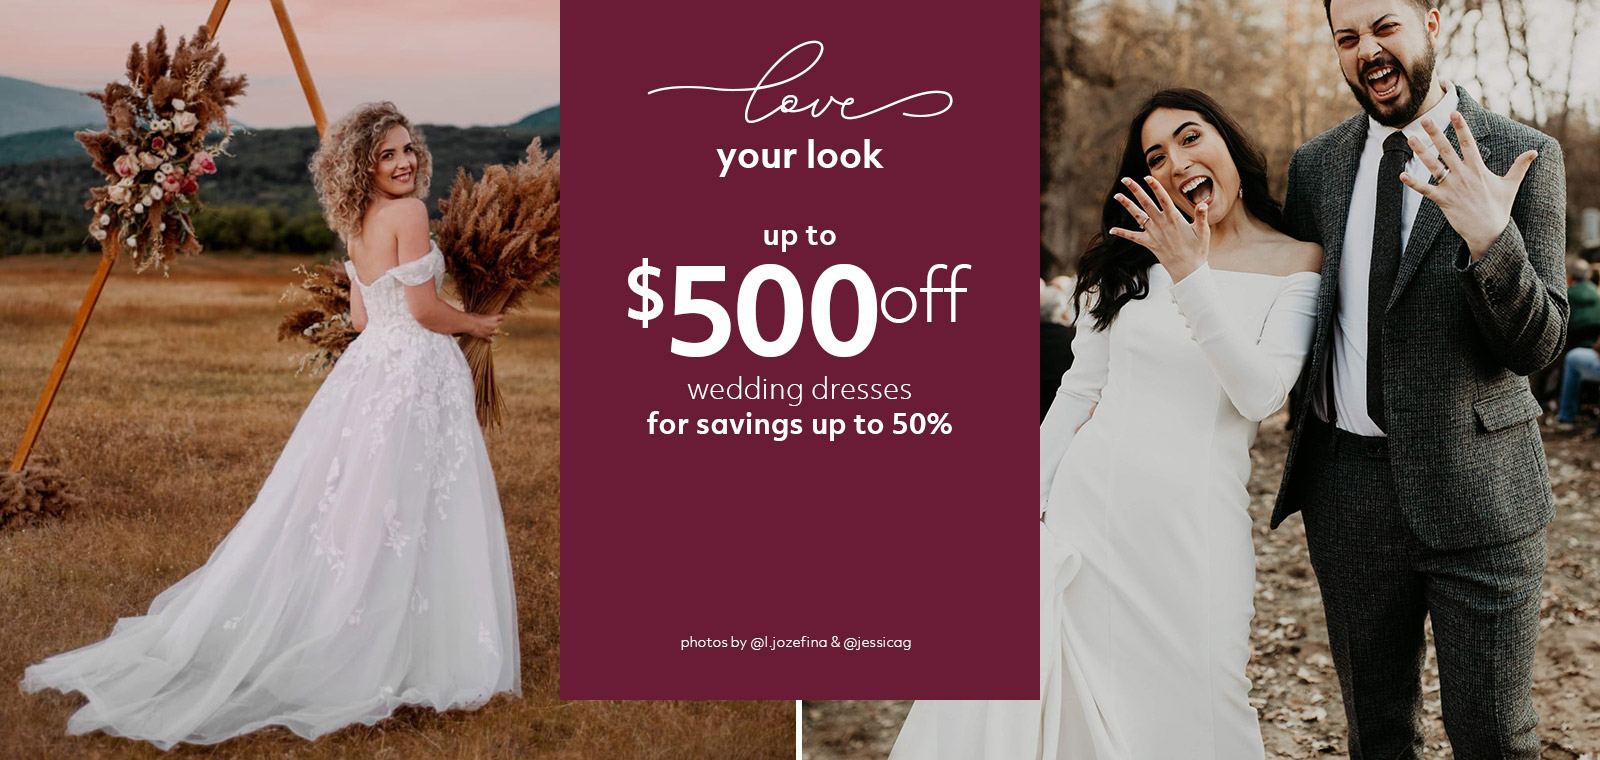 love your look - up to $500 off wedding dresses for saving up to 50% off - photos by @l.jozephina and @jessicag